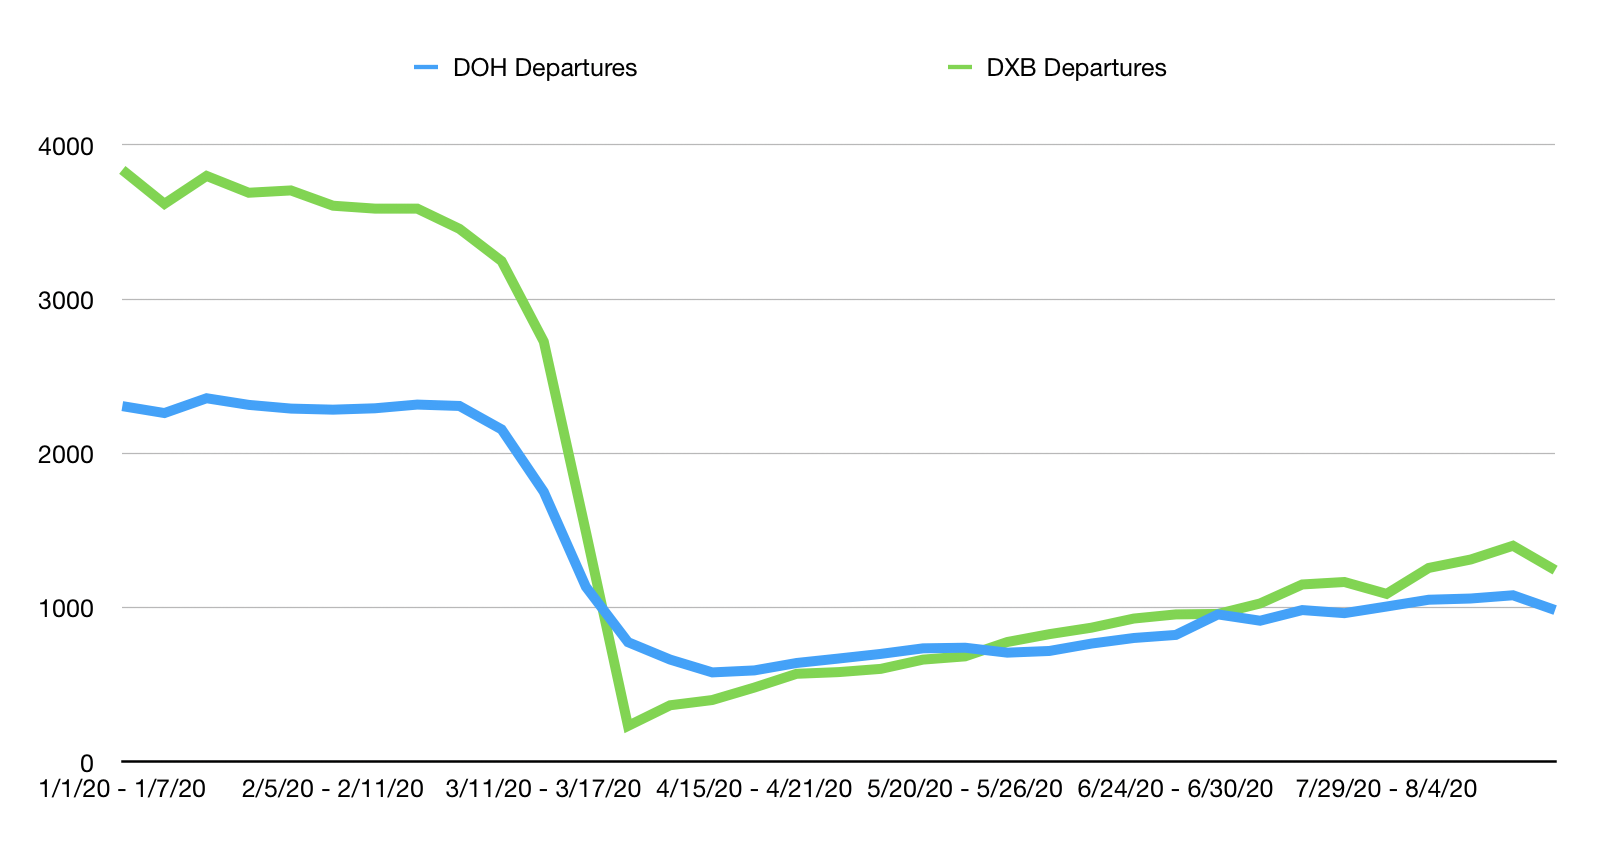 Doha and Dubai departures compared